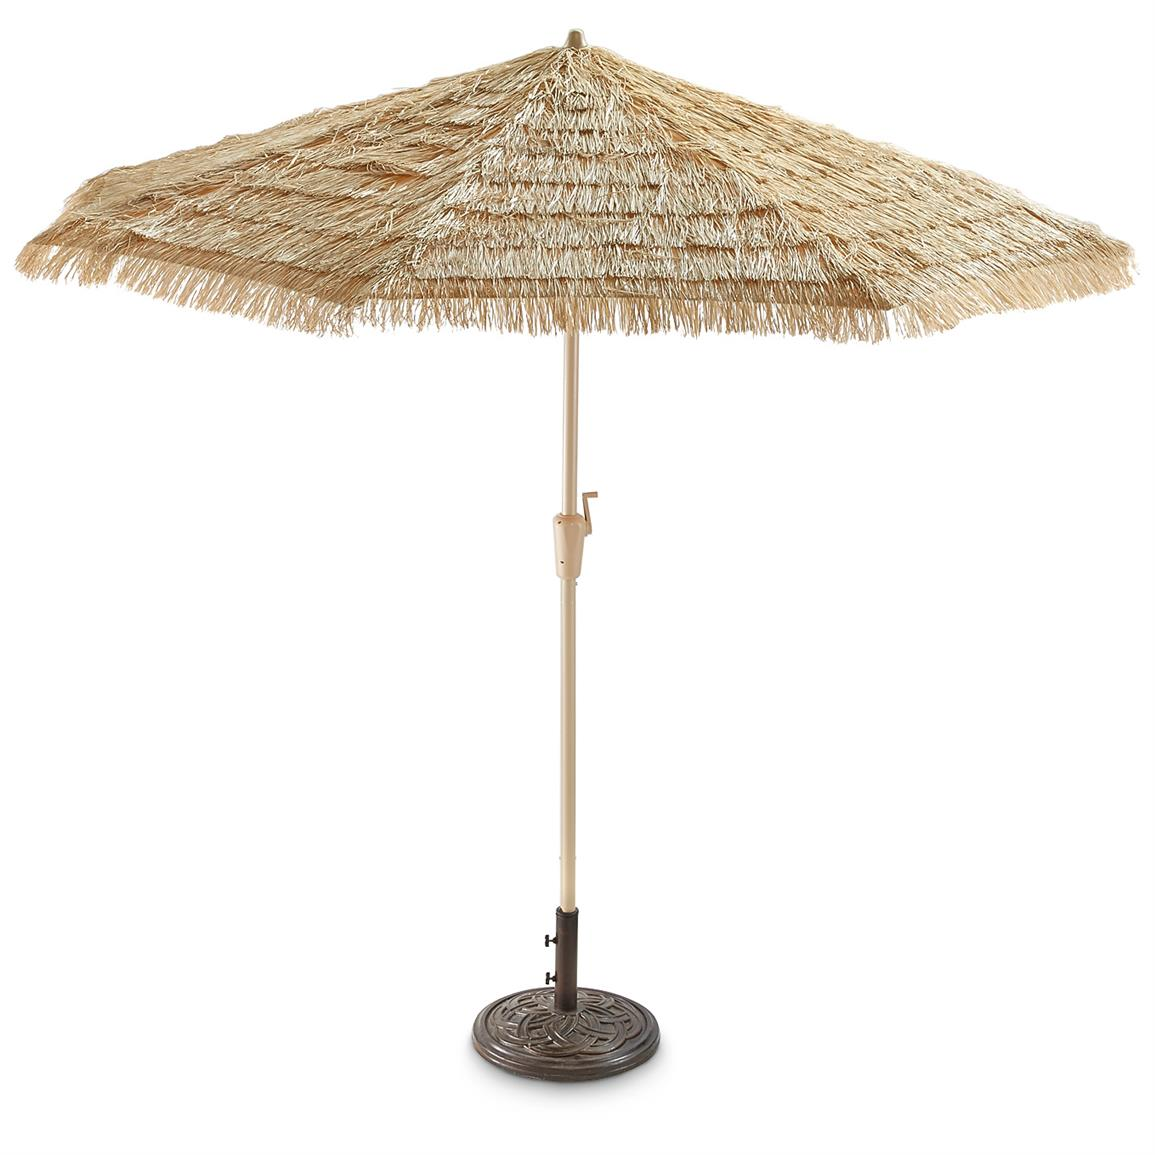 Castlecreek 9' Thatched Tiki Umbrella